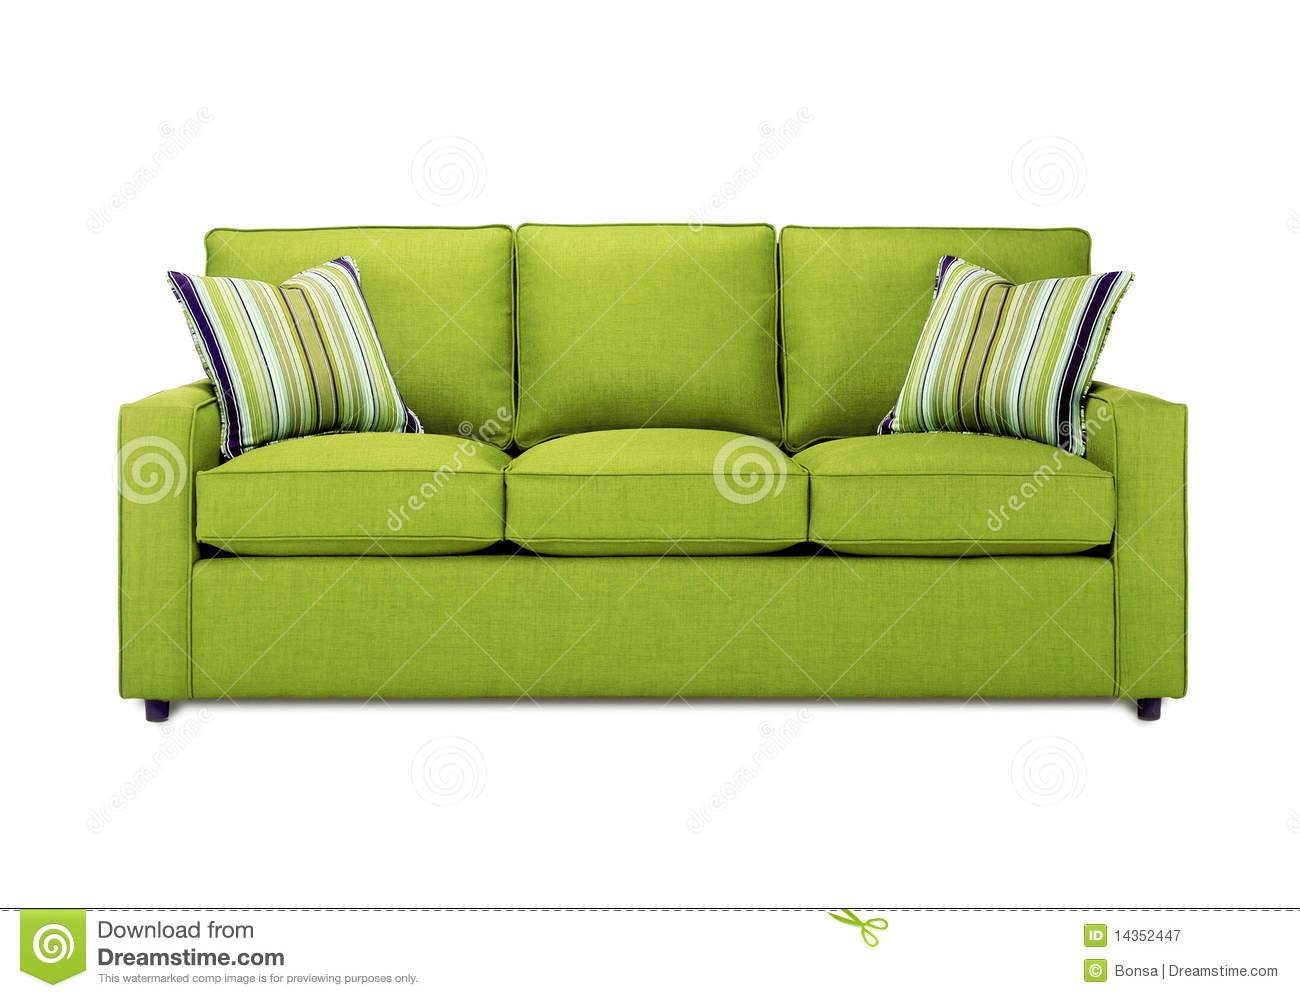 Green sofa royalty free stock photography image 14352447 - Sofa gratis ...